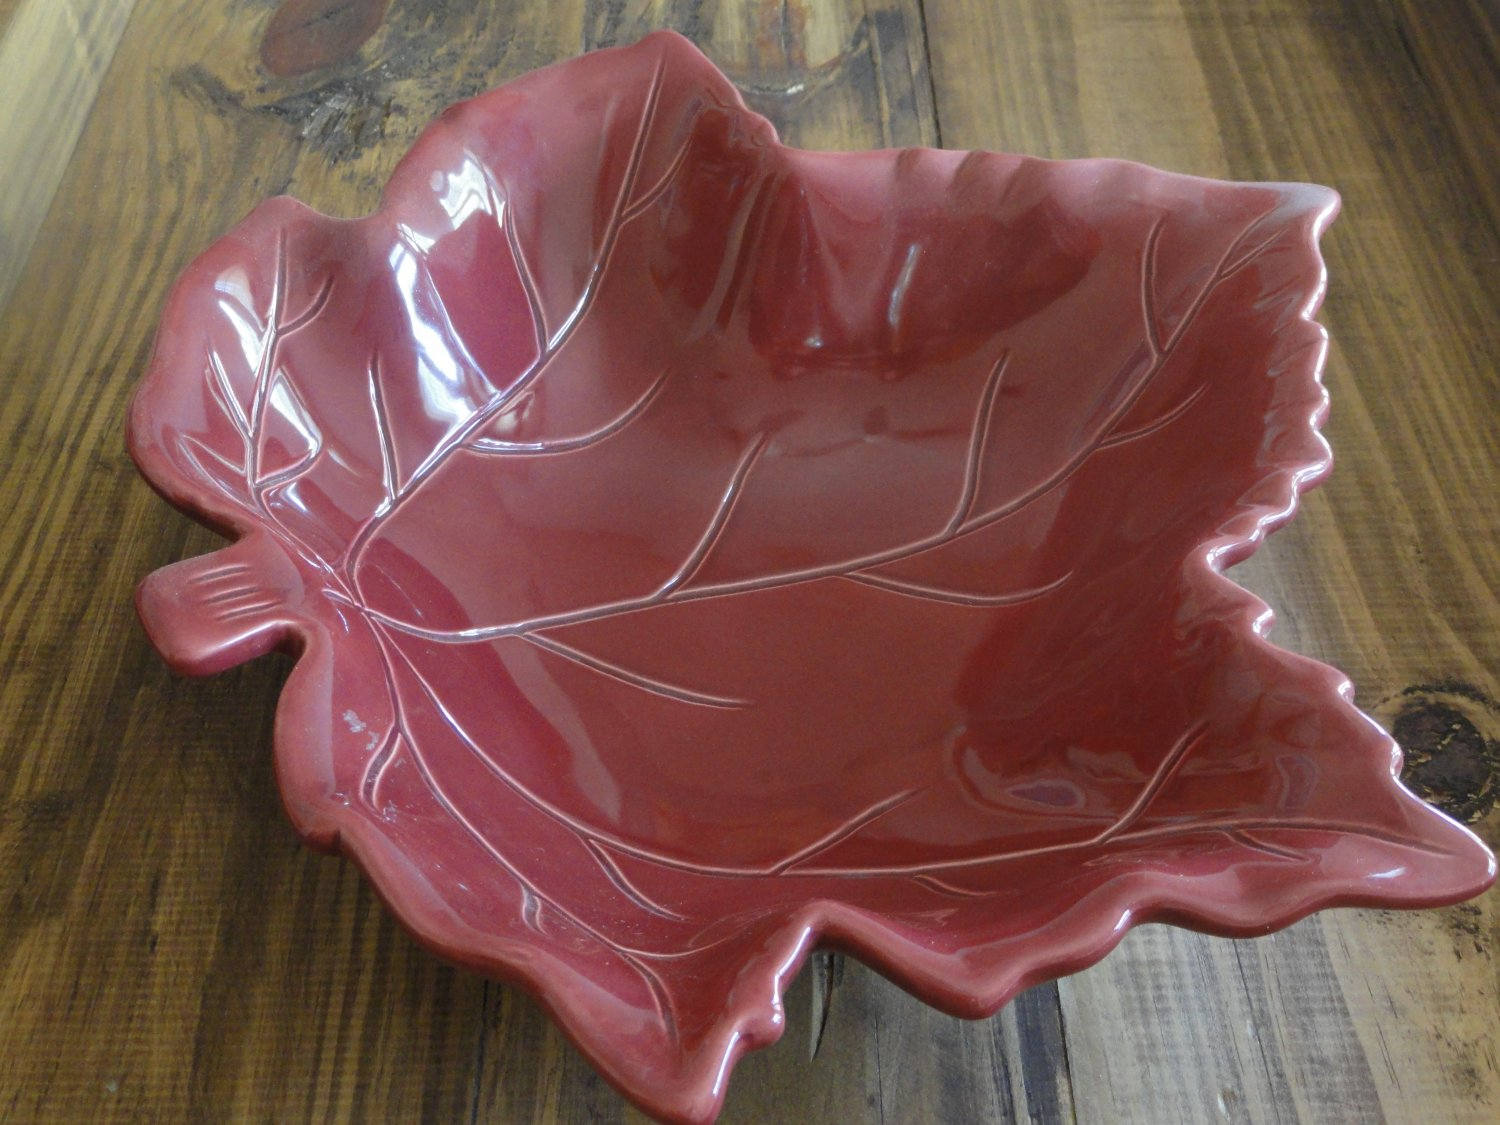 Autumn Maple Leaf Decorative Bowl by Harvest